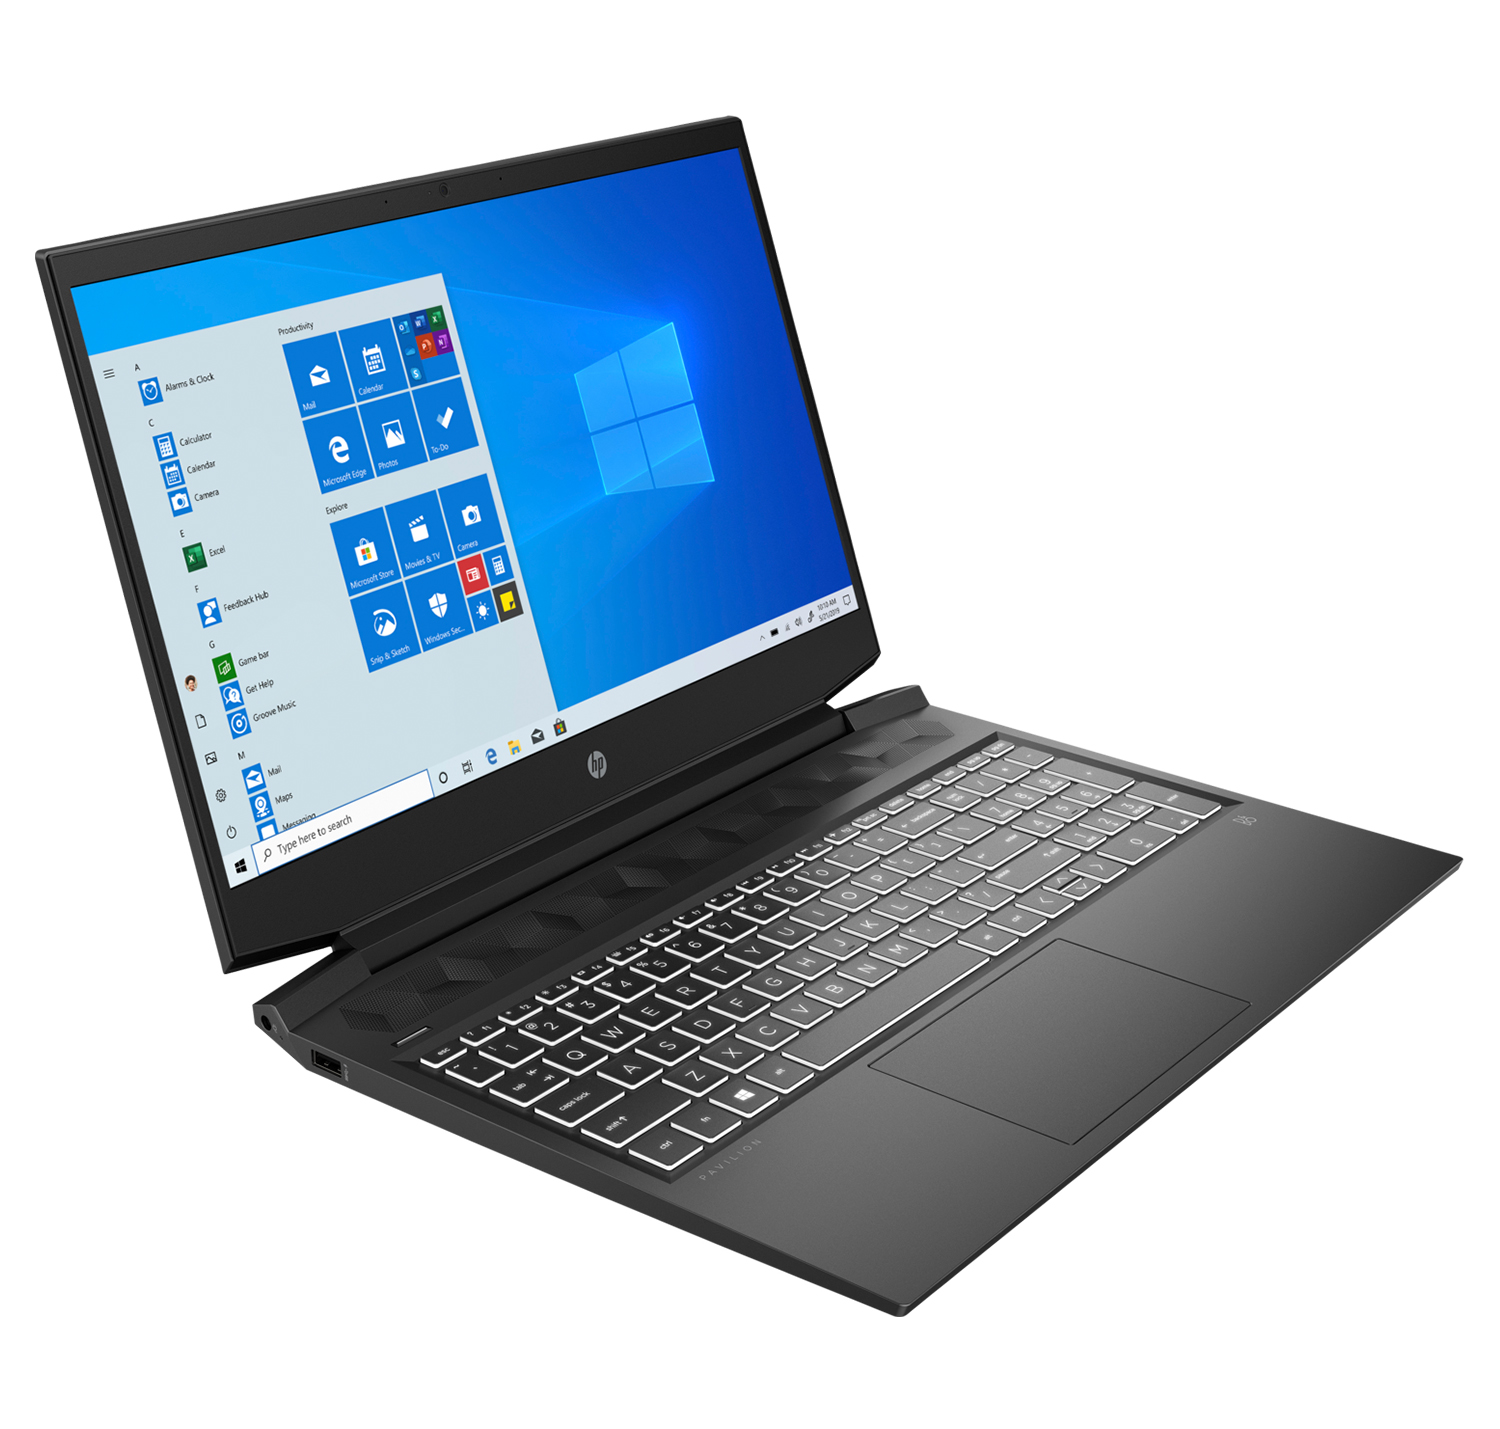 HP Pavilion Gaming Laptop 16-a0022tx 16.1inch FHD IPS i5-10300H 2.5Ghz 8GB Ram 256GB SSD+1TB HDD GTX1650 4GB GX Win 10 Black